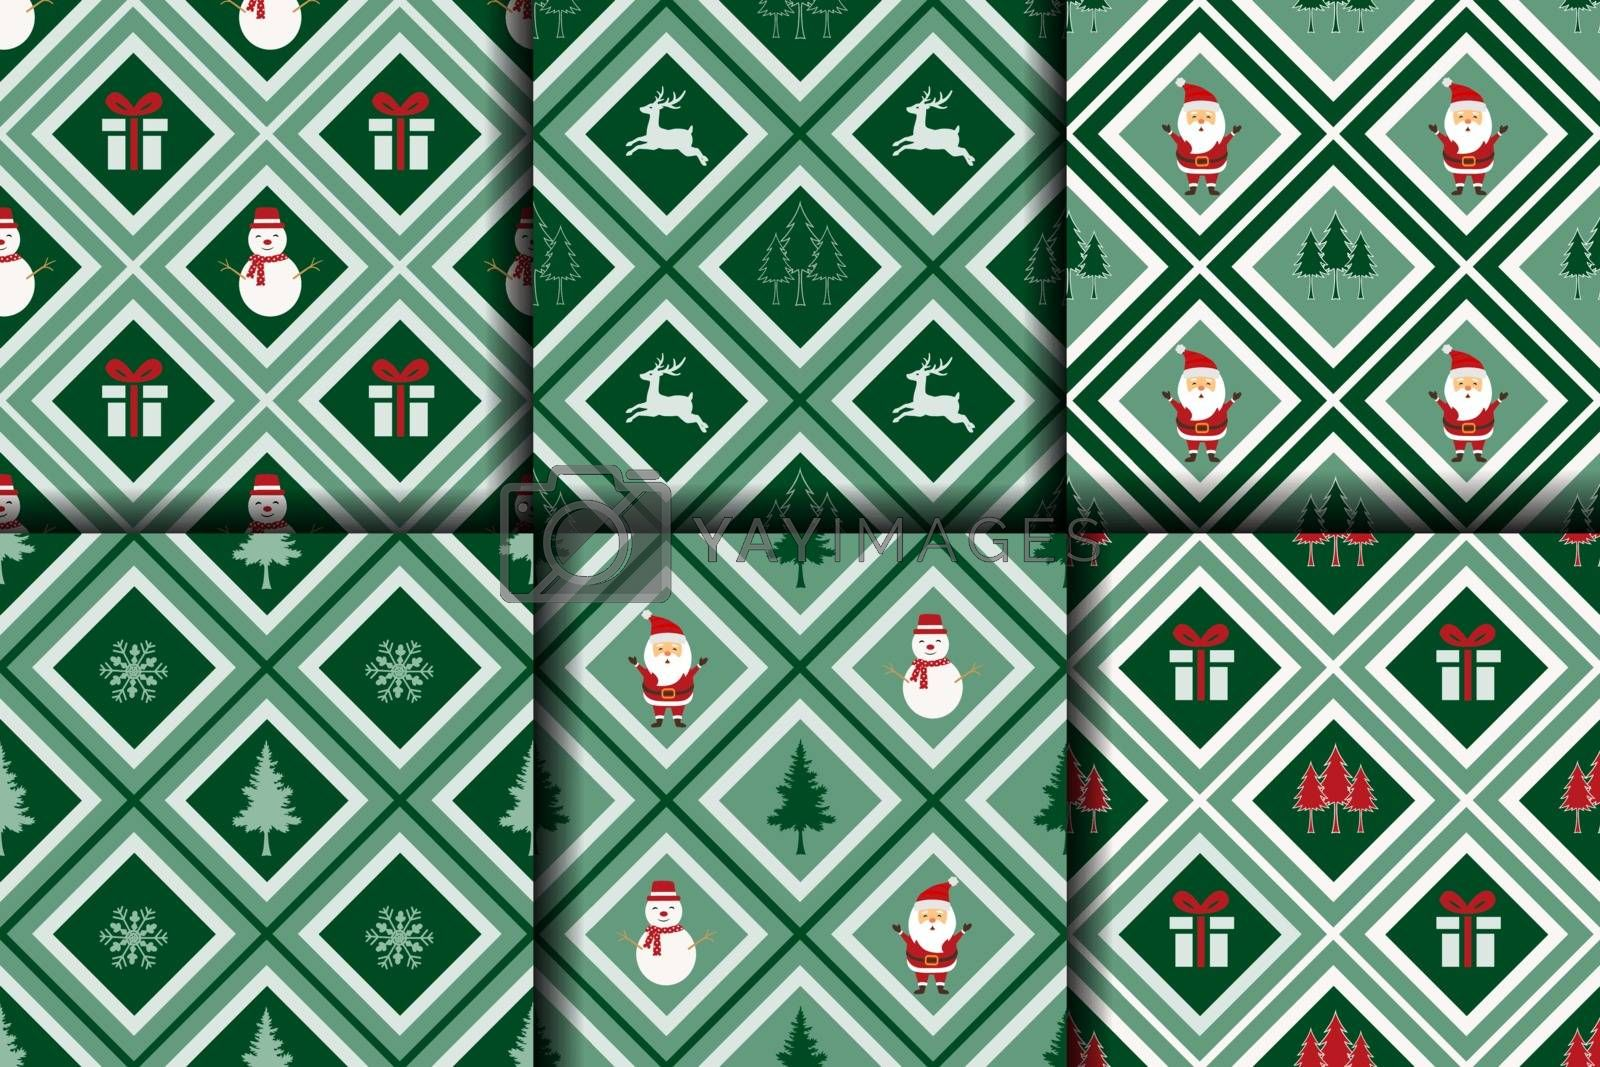 Christmas seamless pattern,winter collection on geometric background for decorative,fabric,textile,print or wrapping paper,vector illustration